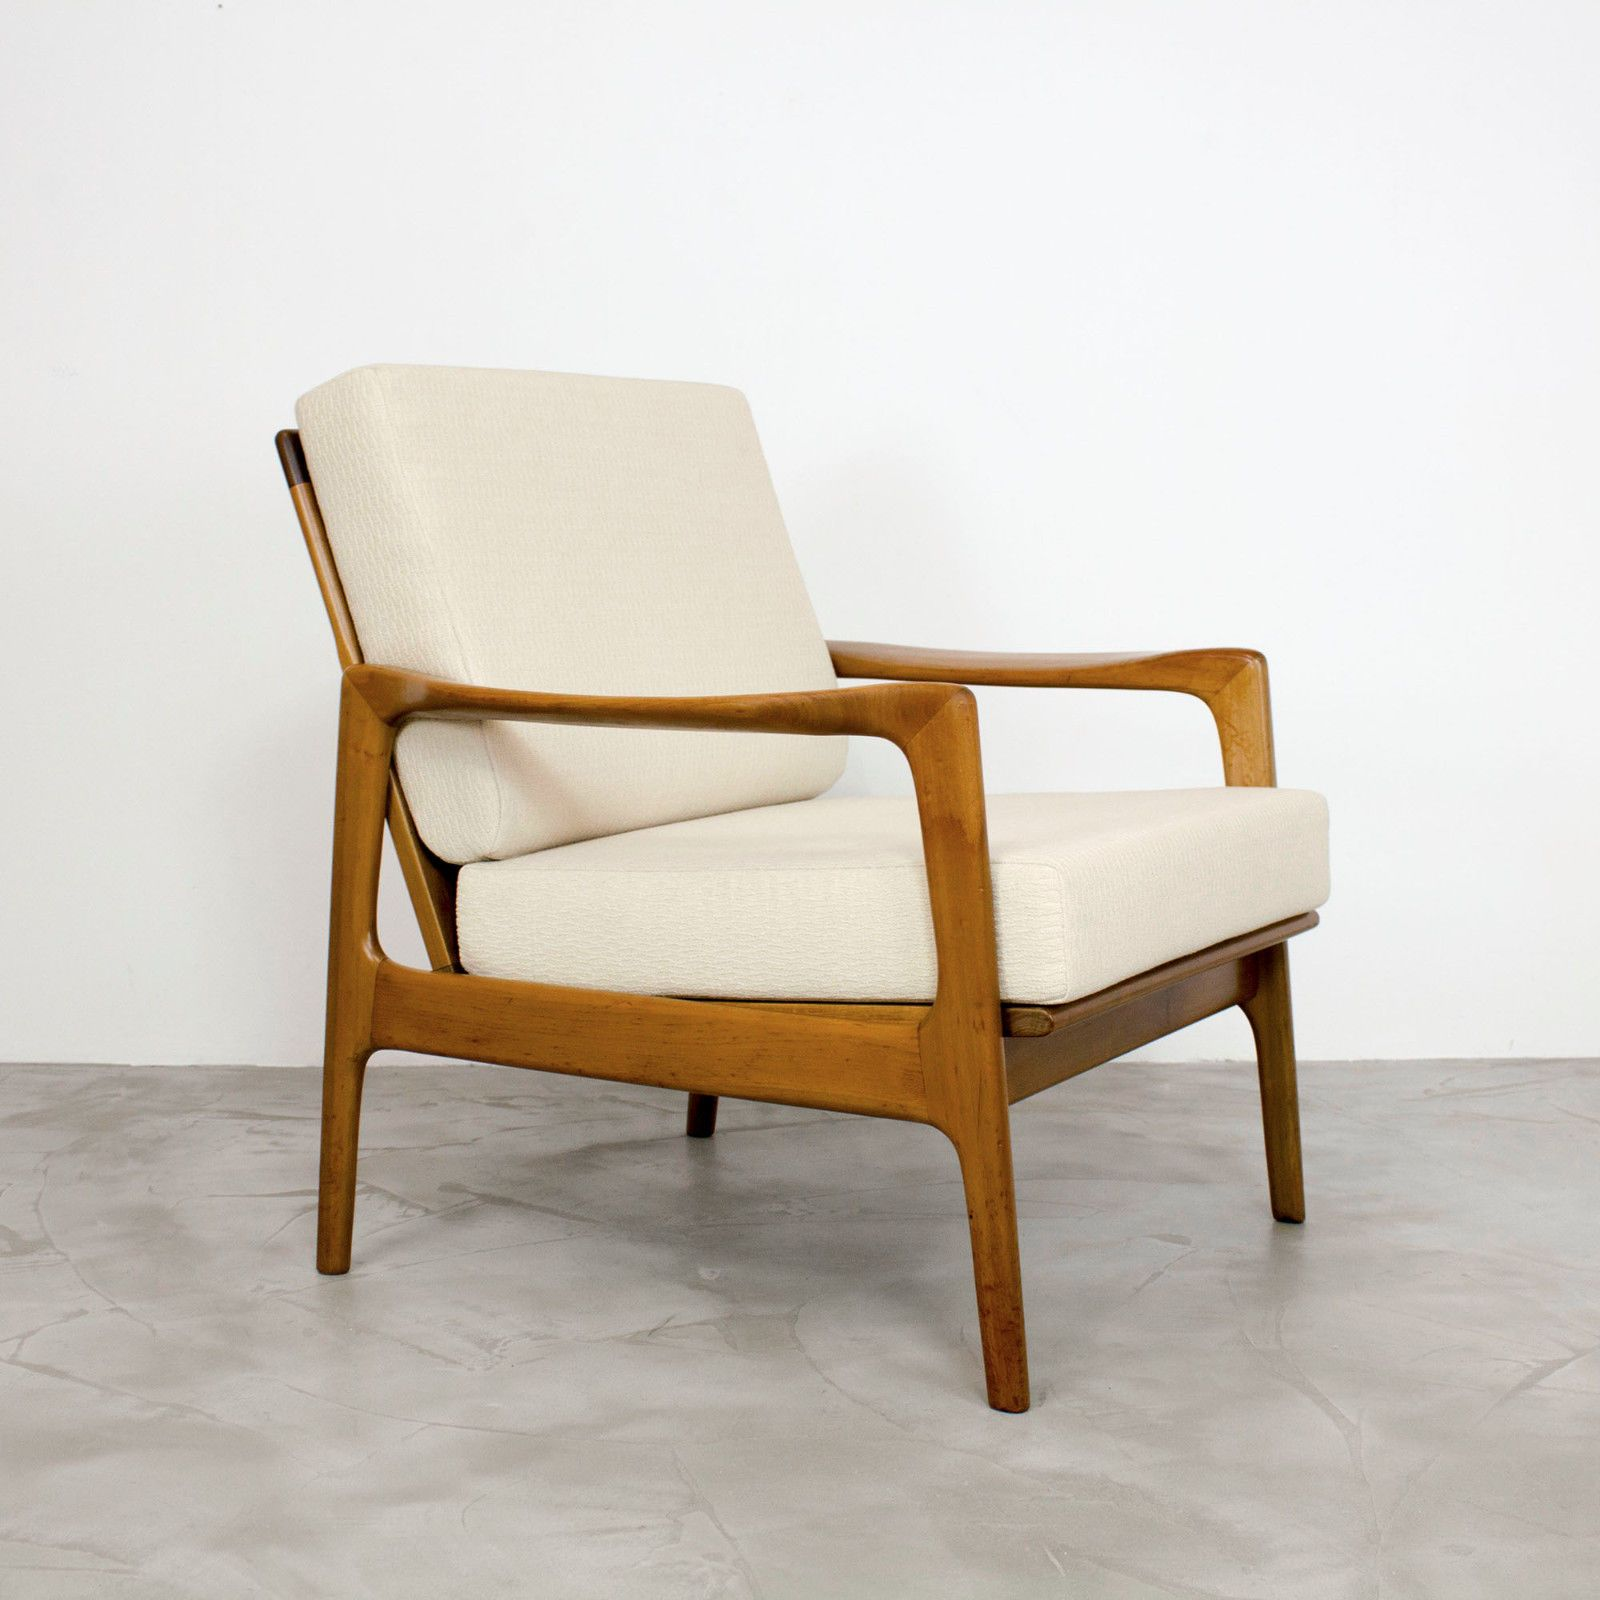 Mid Century Modern Nussbaum Sessel 50er 60er Walnut Easy Chair 60s 1960 Fabric For Sale Eur 320 00 See Photos Money Bac Sessel Stühle Mid Century Modern